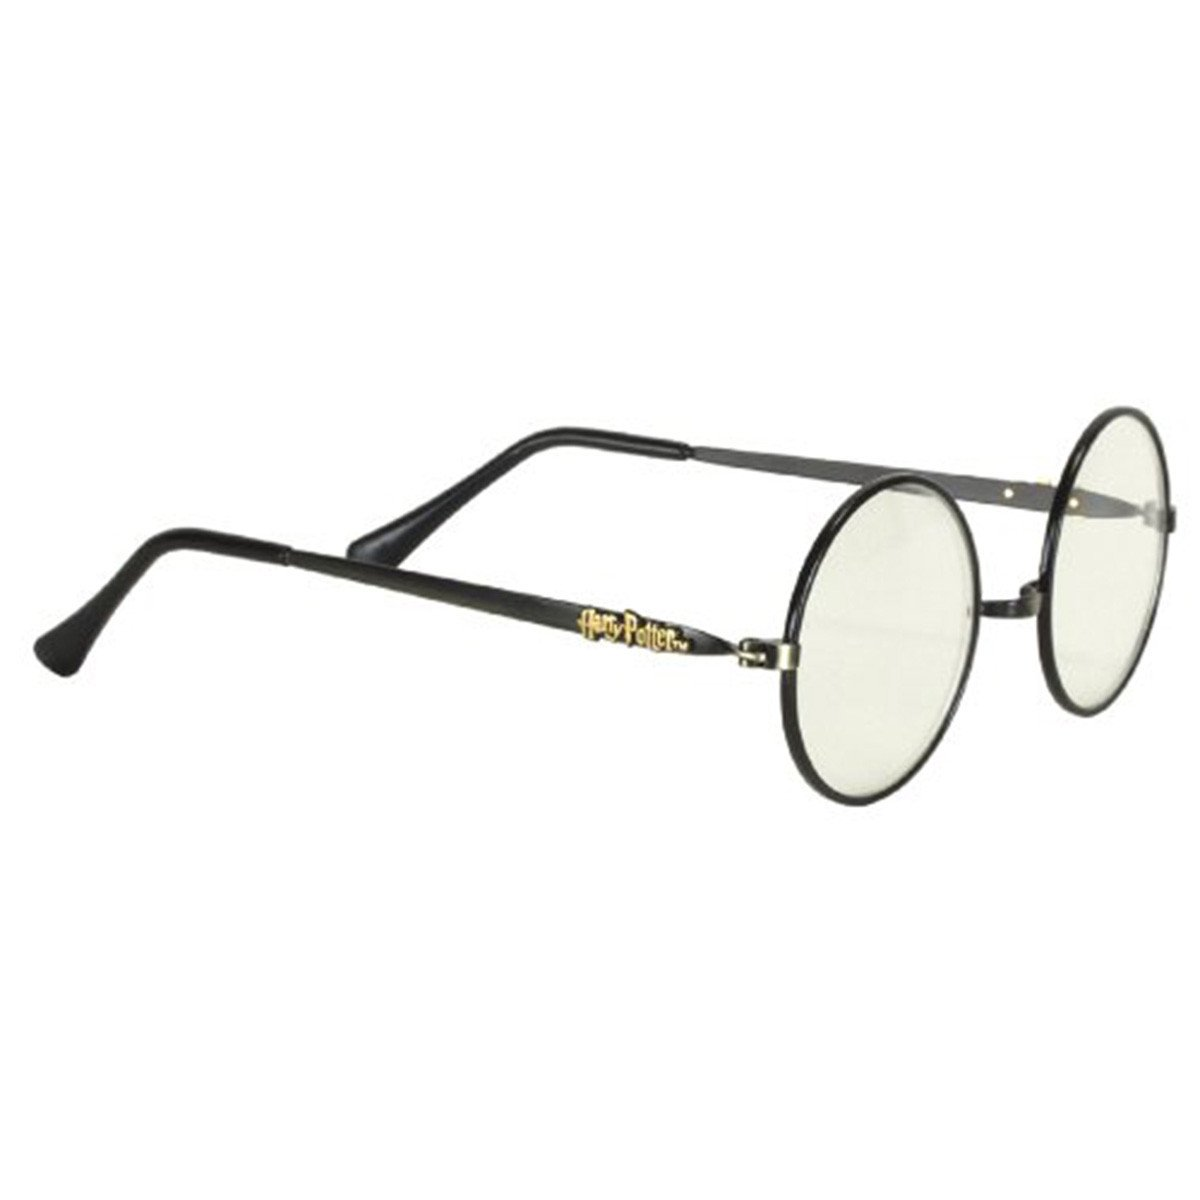 47432111c74 Harry Potter Wire Glasses Costume Accessory Dress Up